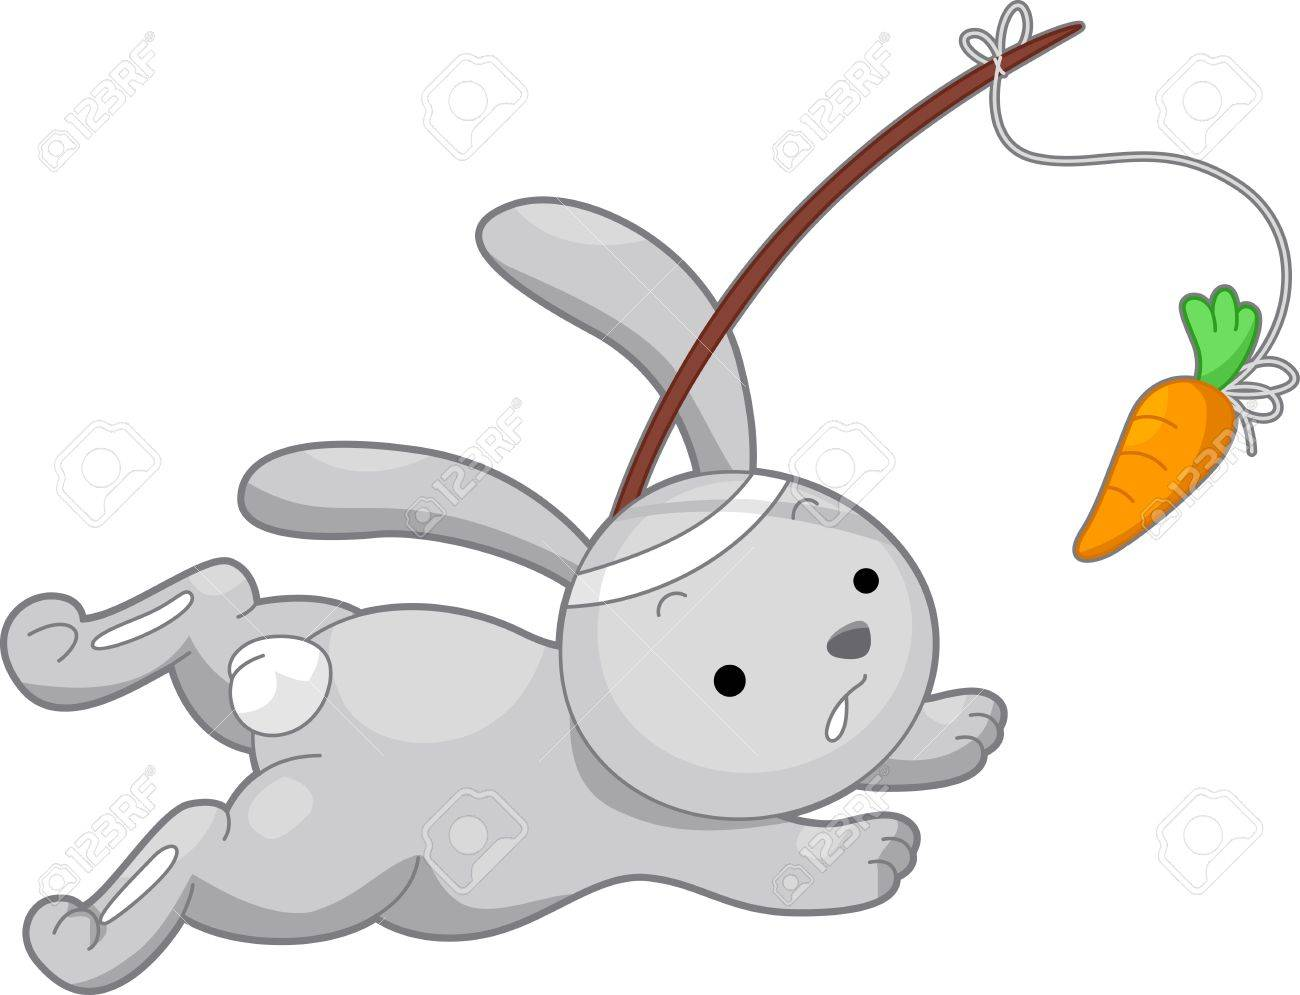 Illustration Of A Rabbit Running After A Carrot Stock Photo ...